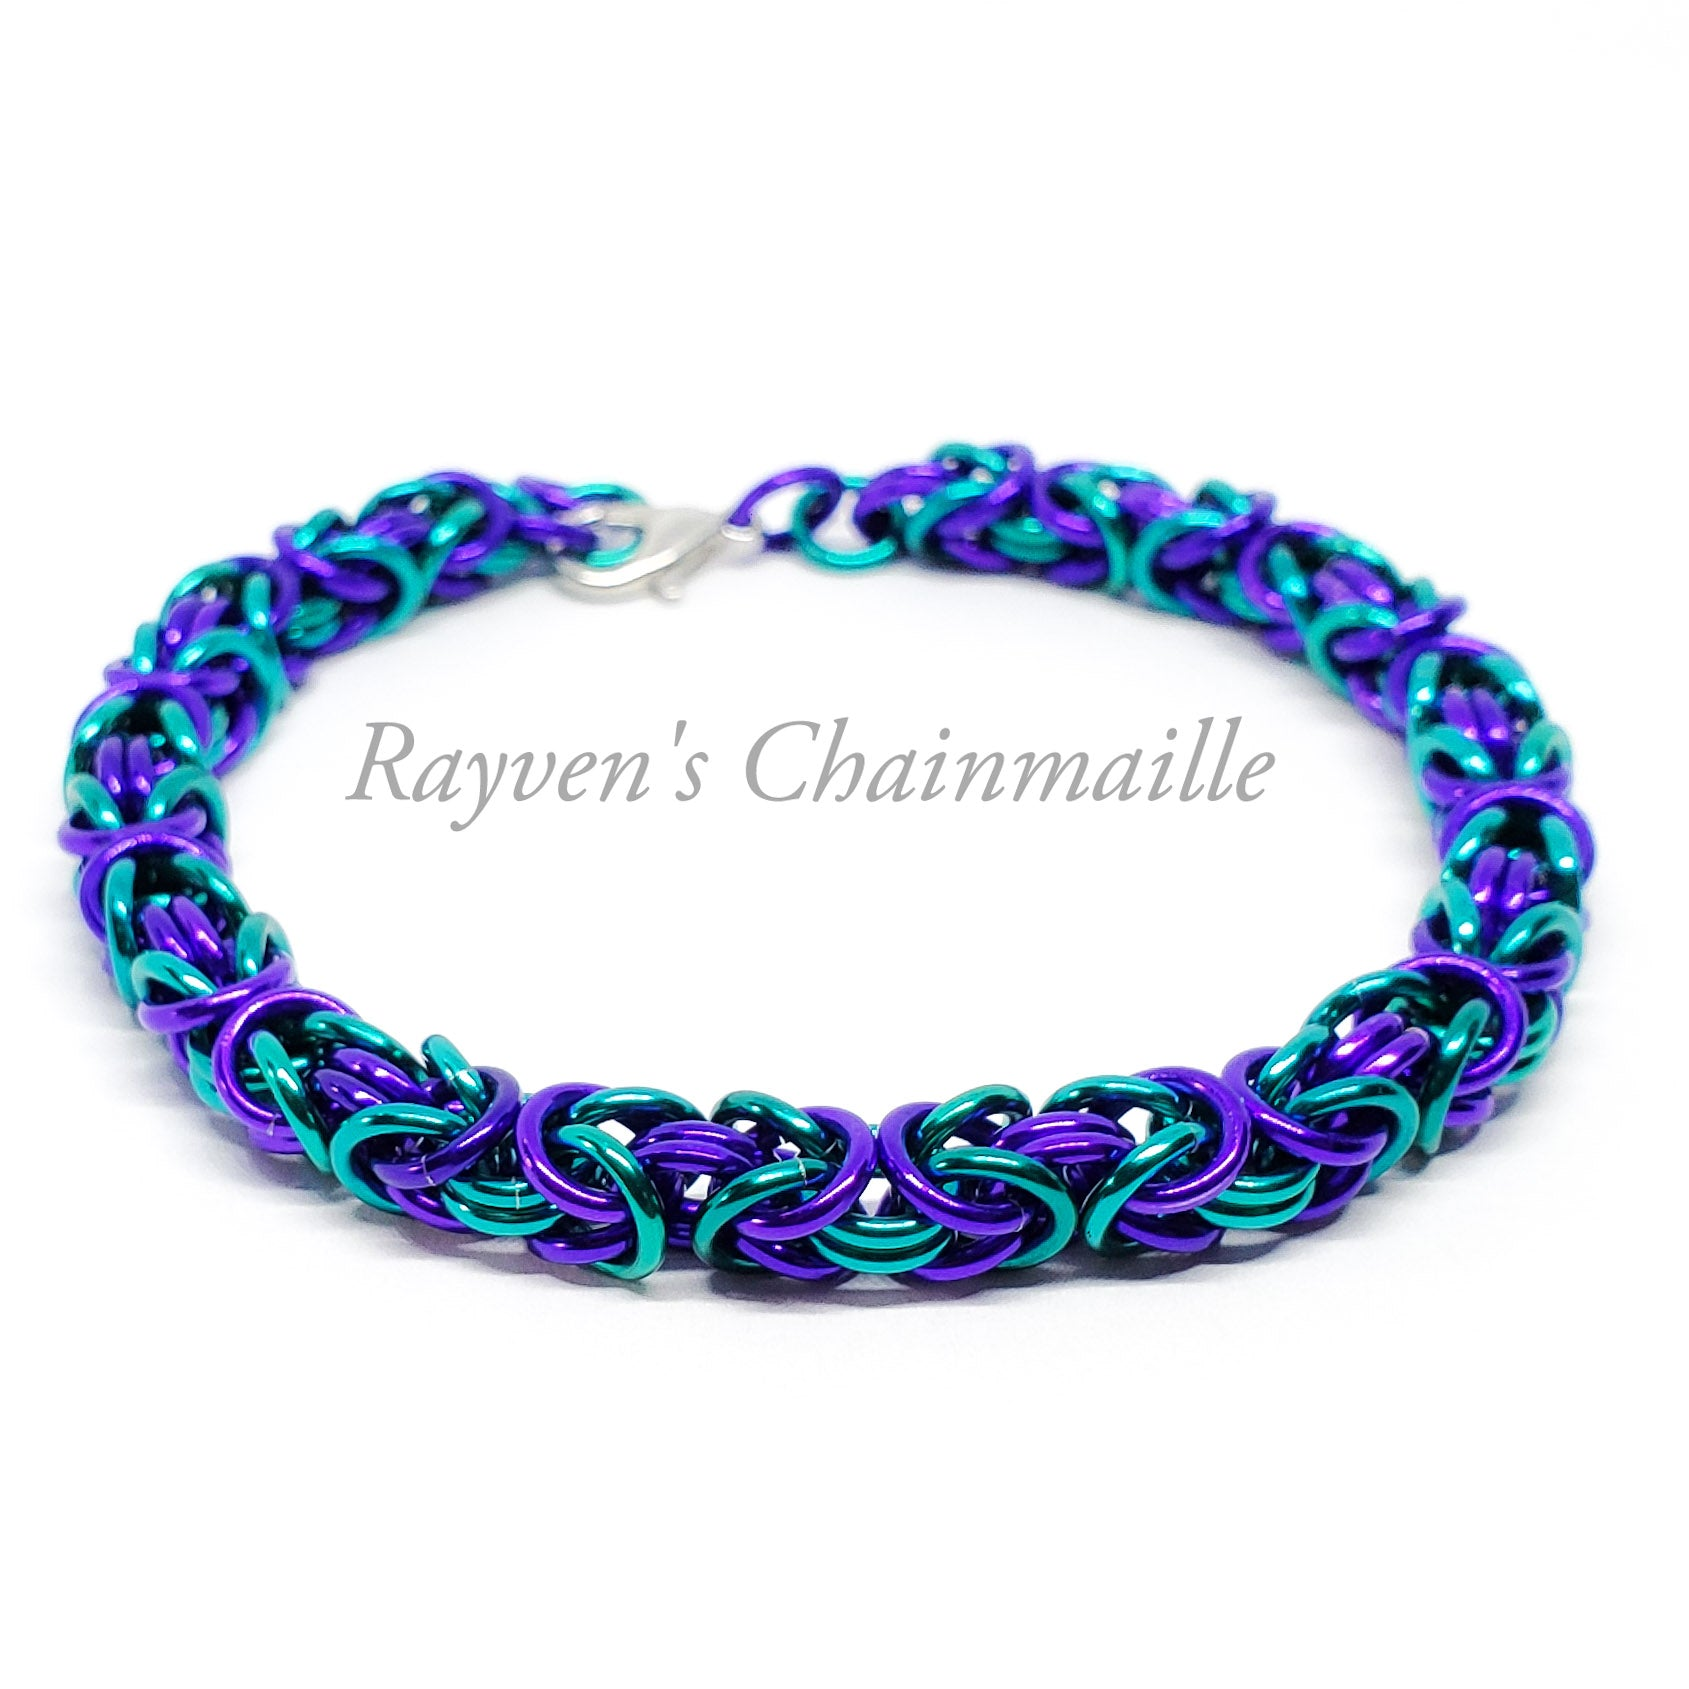 Teal and Purple Byzantine Chainmail Bracelet - Rayven's Chainmaille